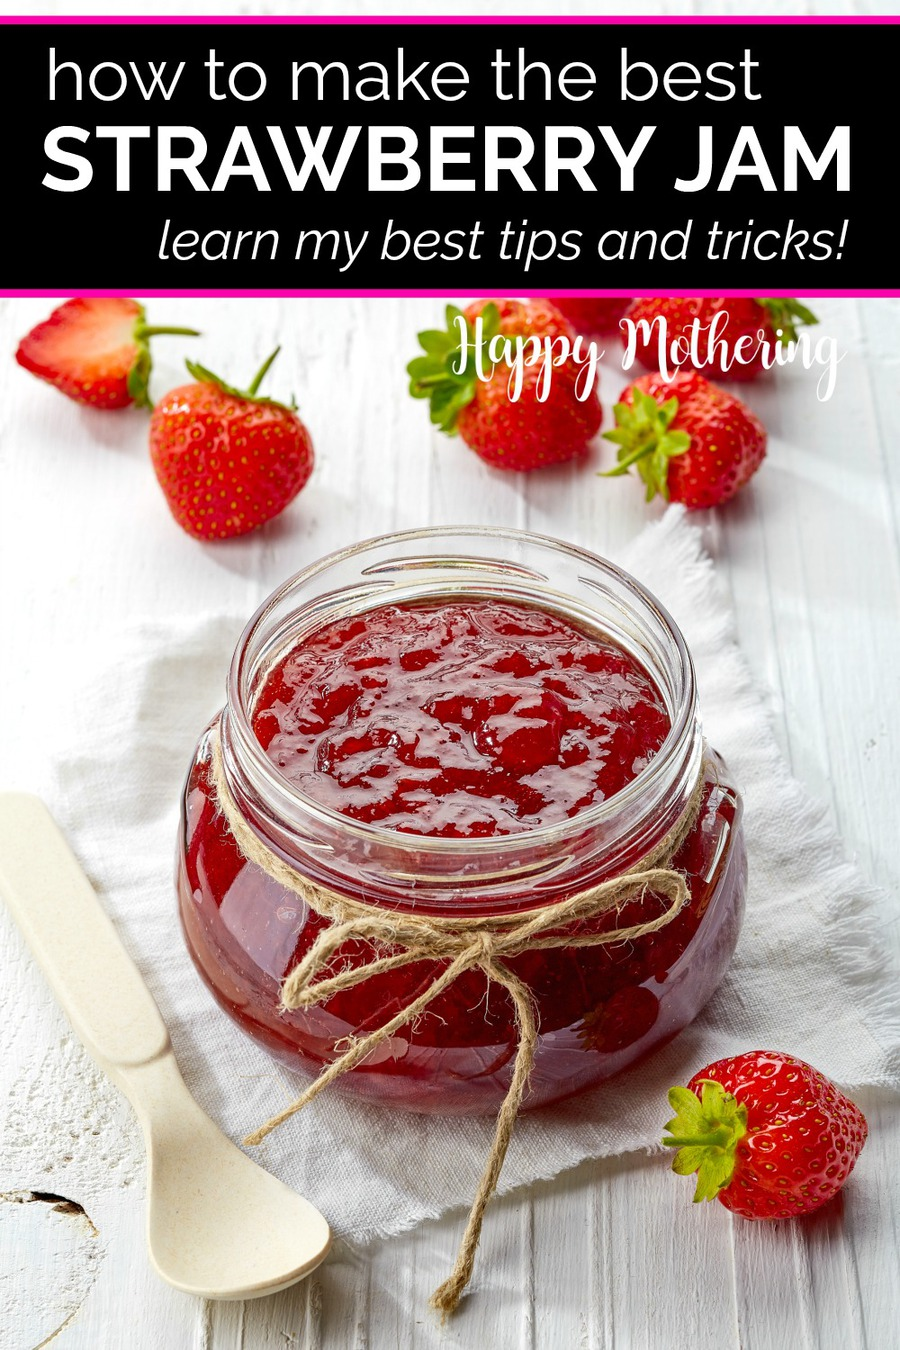 Are you looking for tips and tricks for making the best homemade strawberry jam? Learn how to make this easy small batch strawberry jam recipe without pectin and get my thoughts on uses and variations.